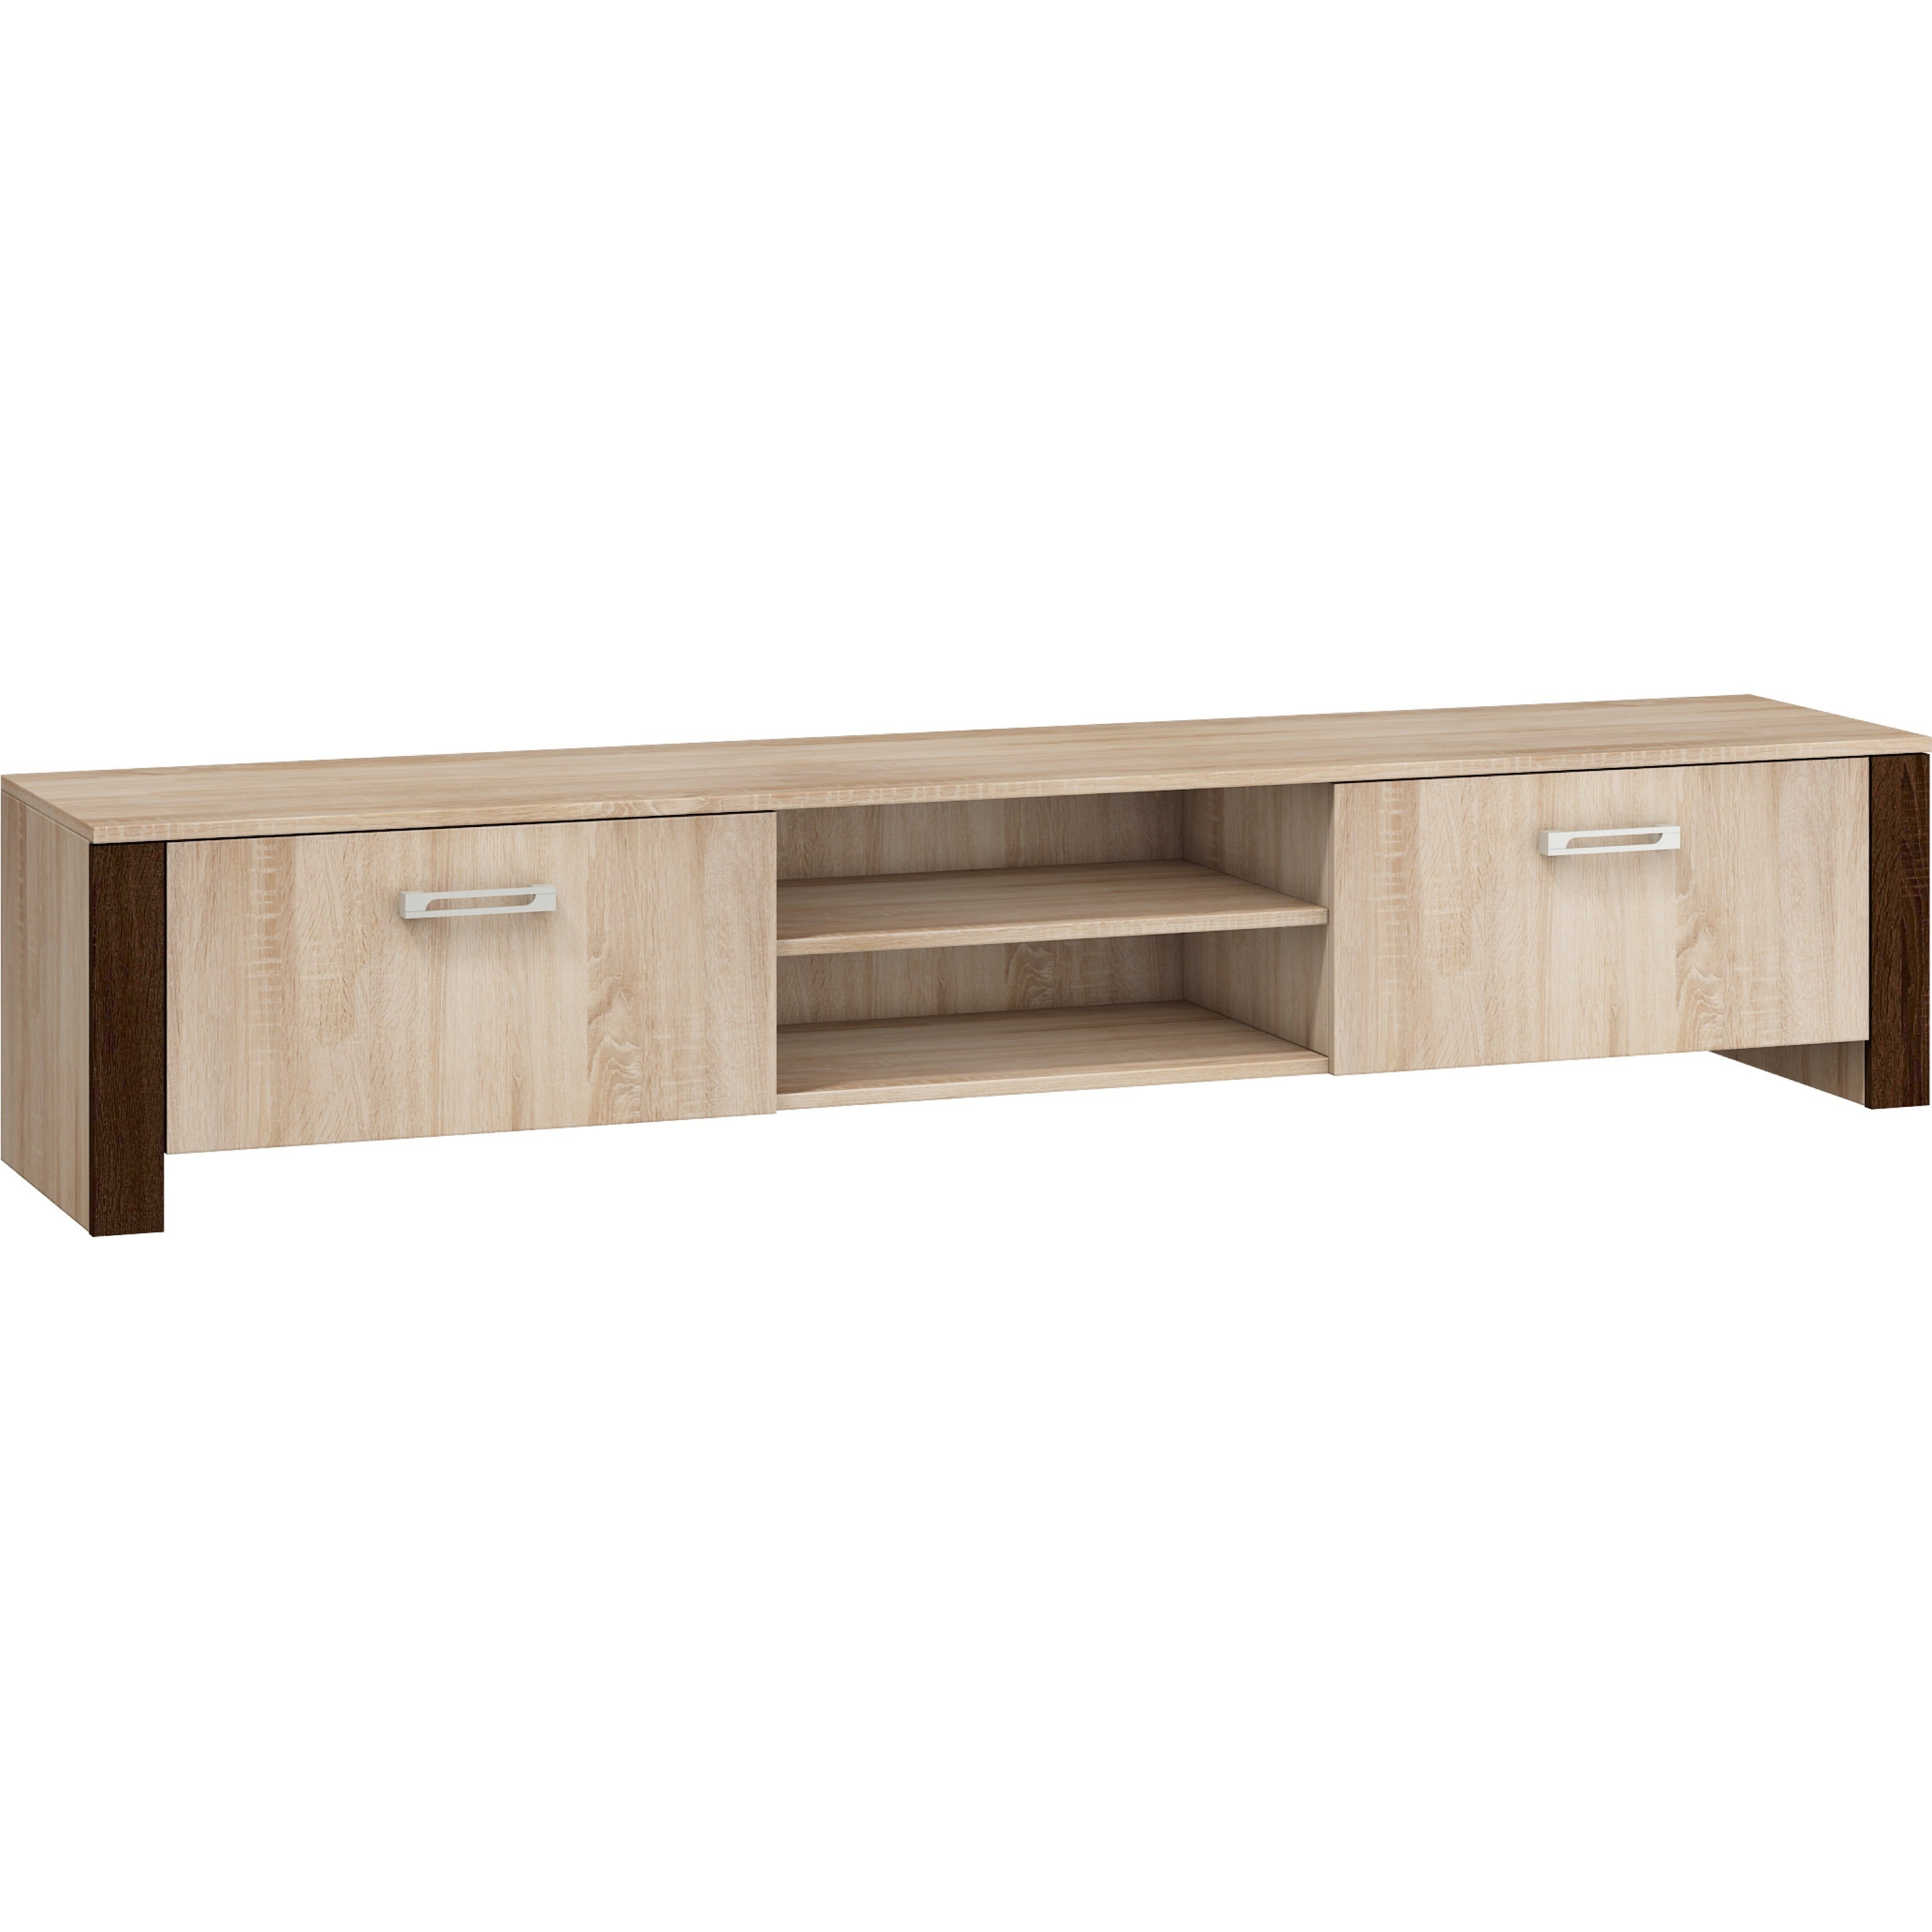 Hugo 78 inch long TV Stand